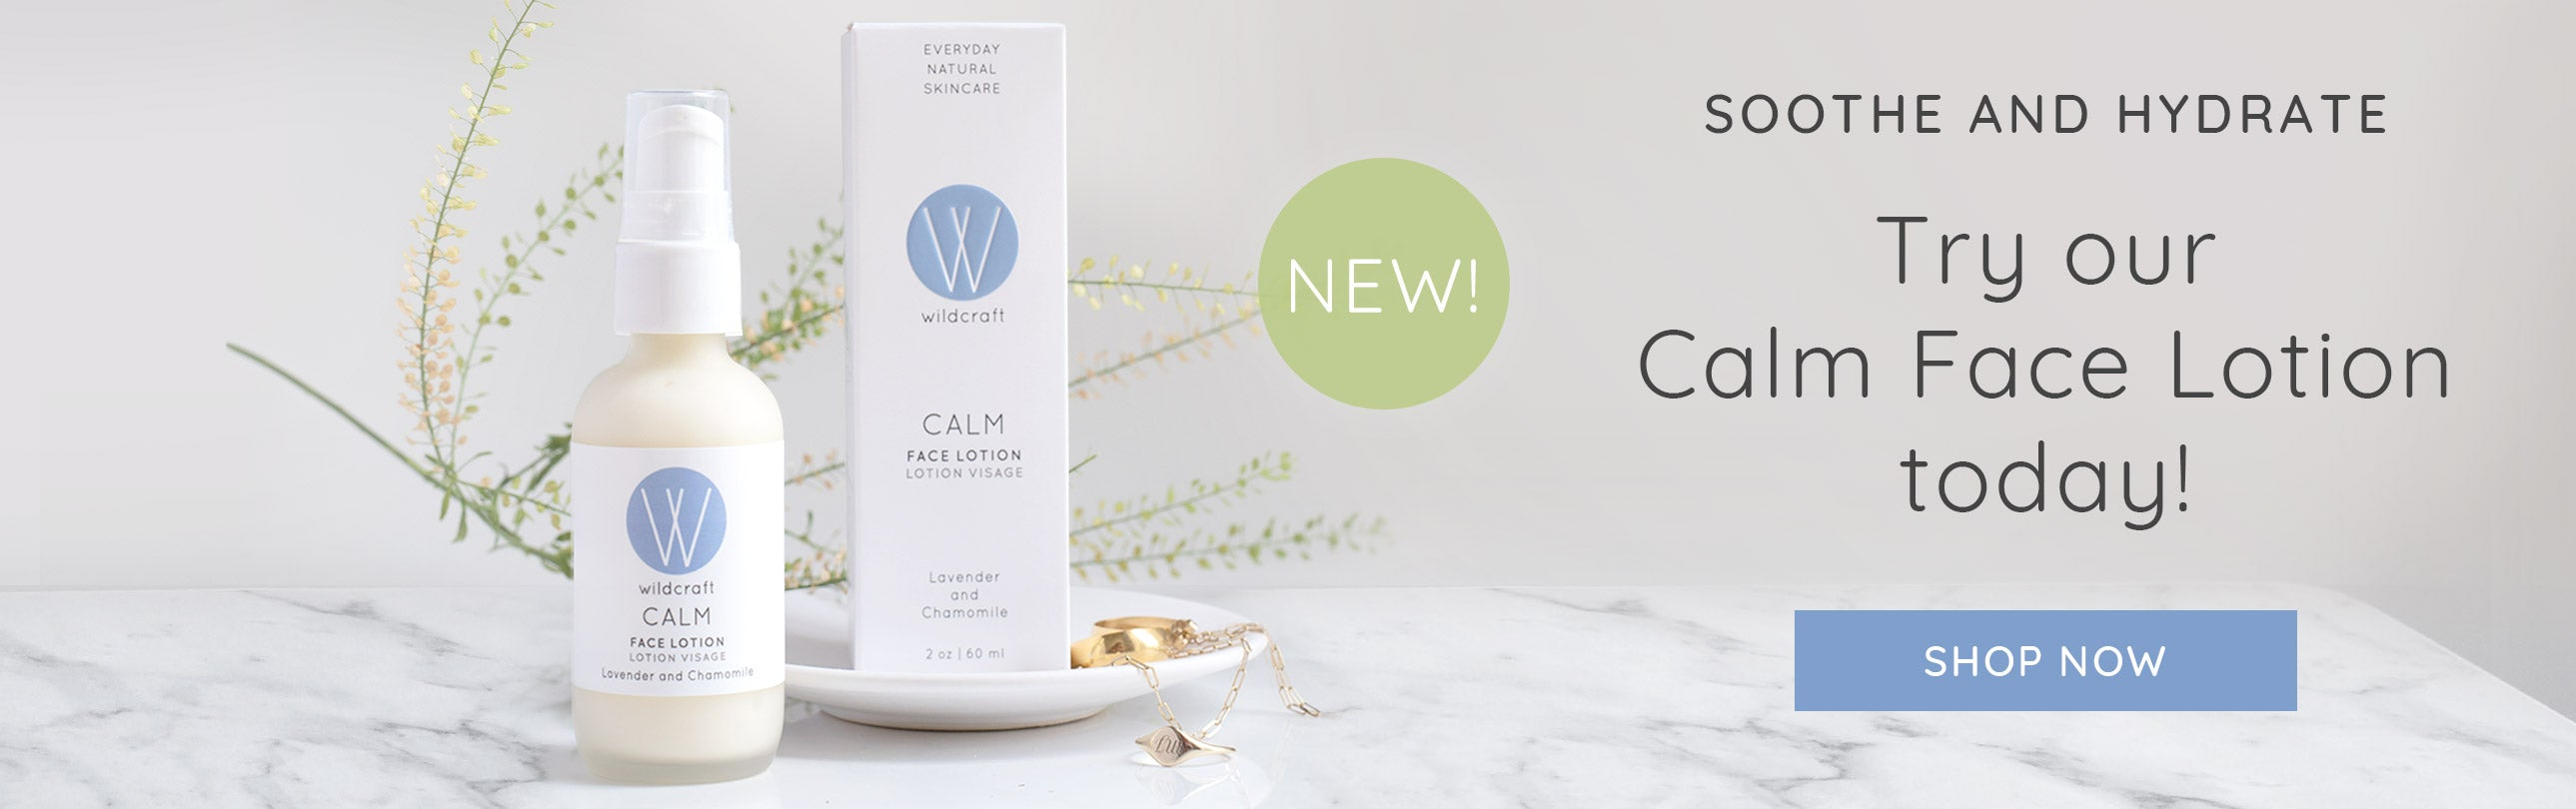 New: Calm Face Lotion!